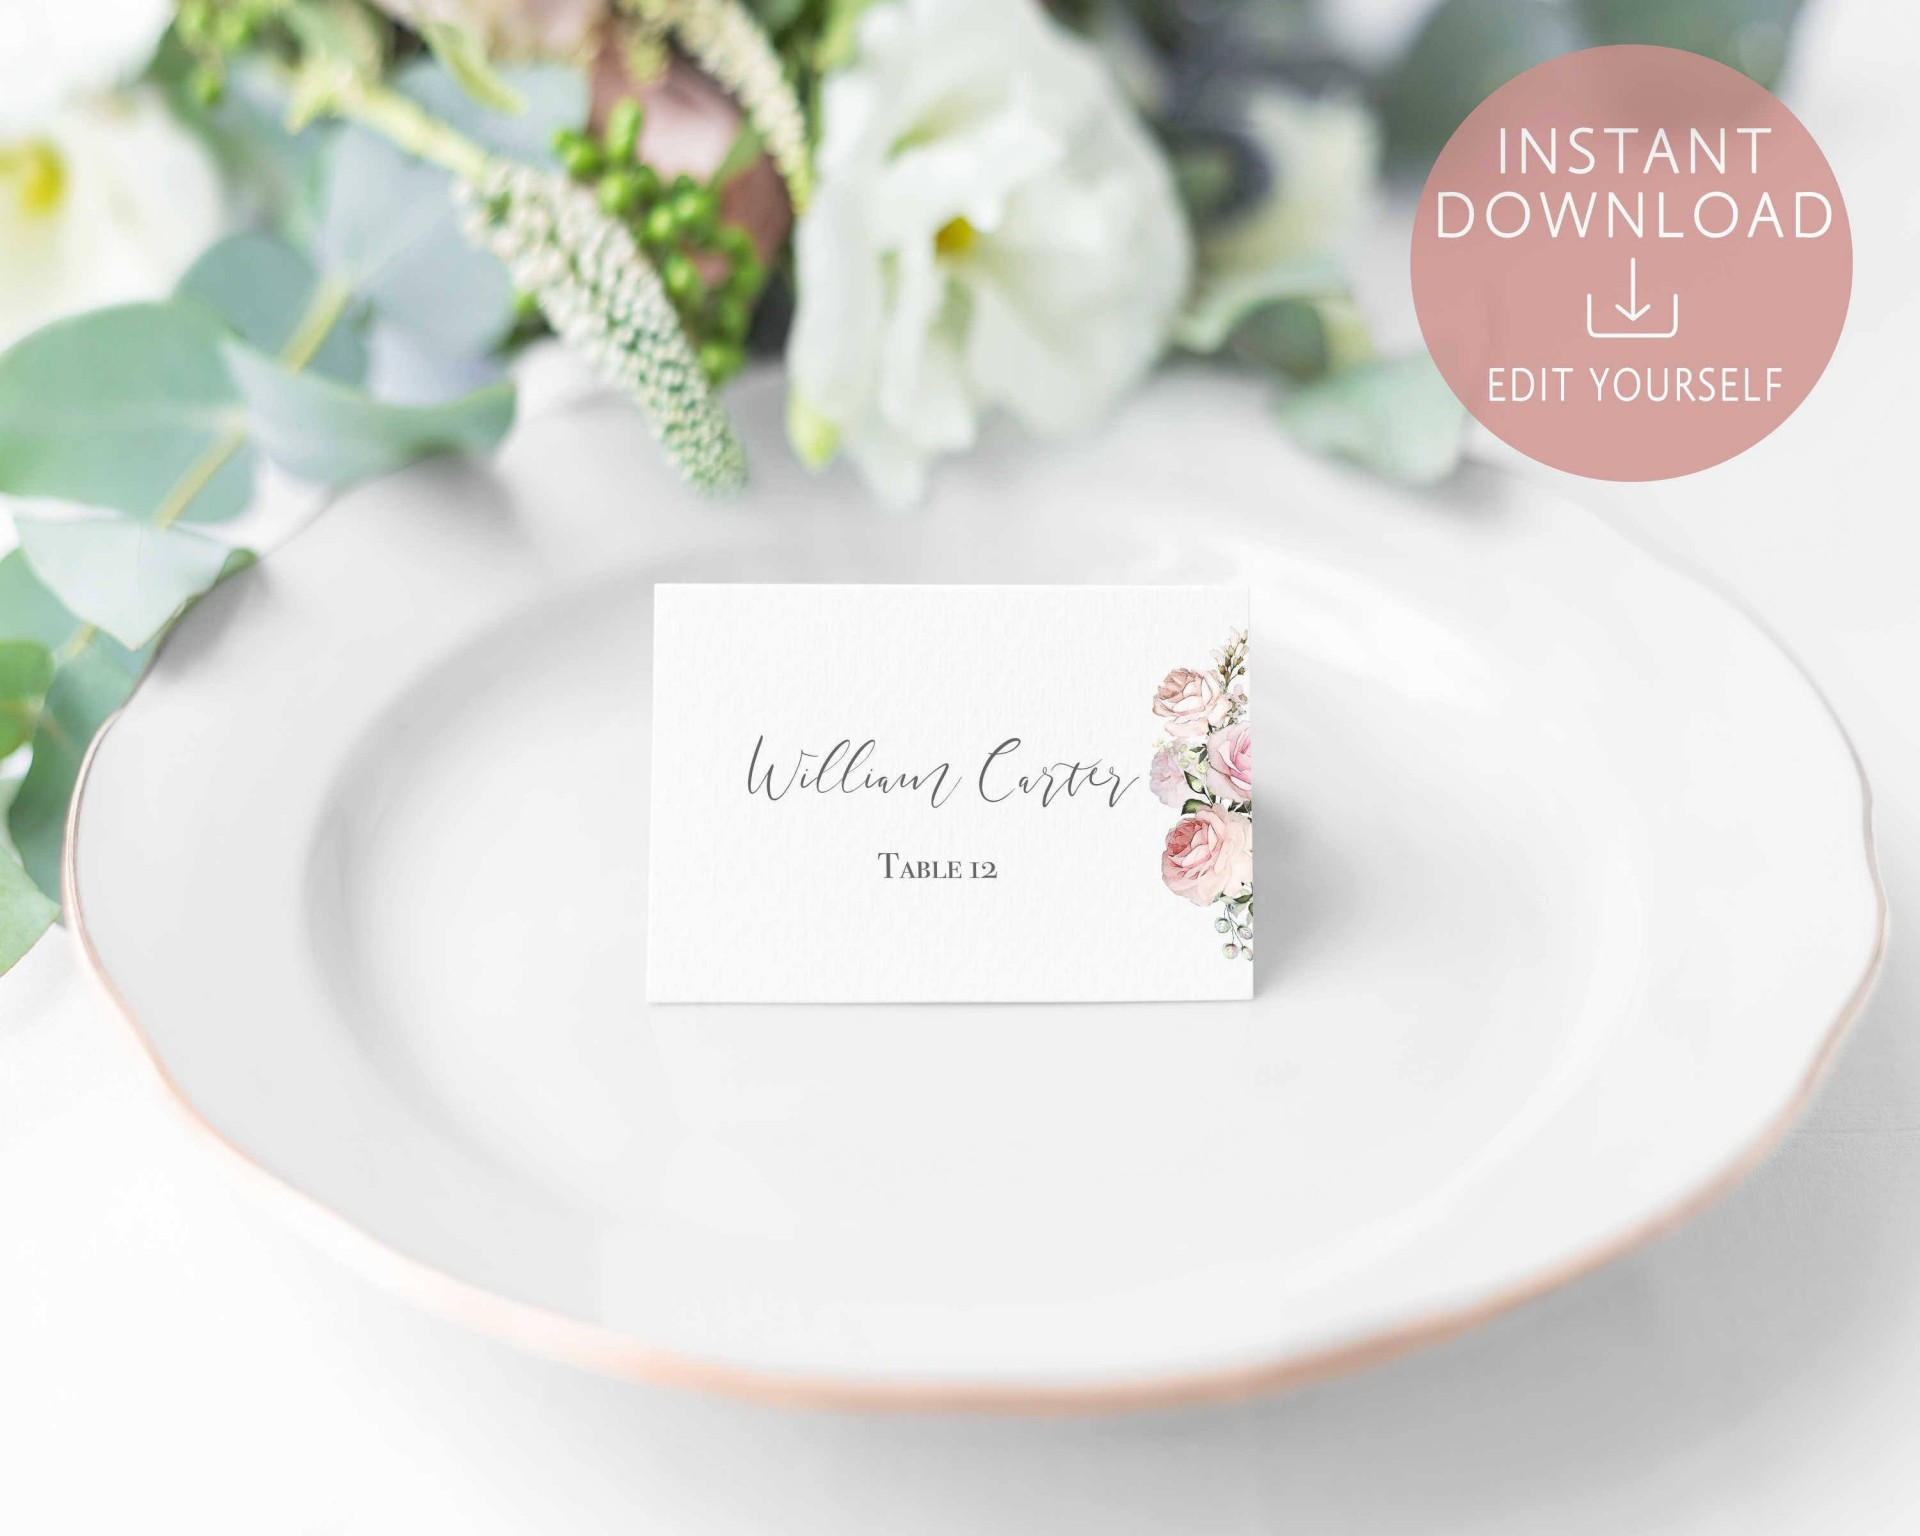 004 Surprising Free Table Name Place Card Template Design  Placement1920